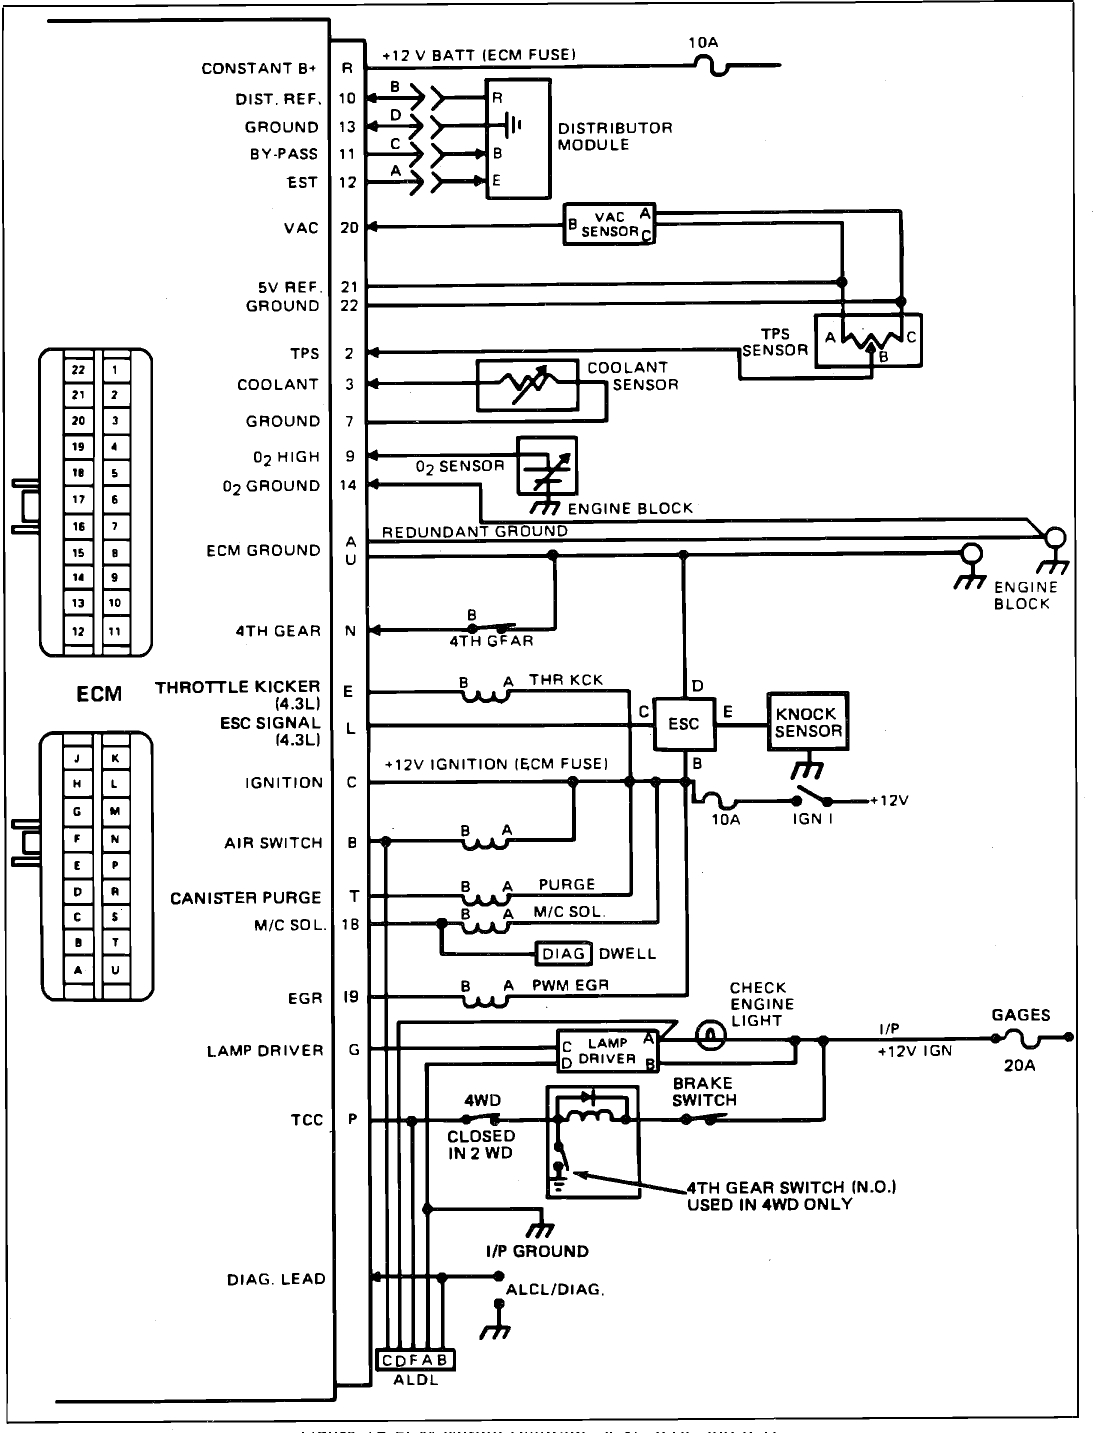 diagram] chevrolet g20 wiring diagram full version hd quality wiring diagram  - surgediagram1b.osteriamadreterra.it  osteria madre terra